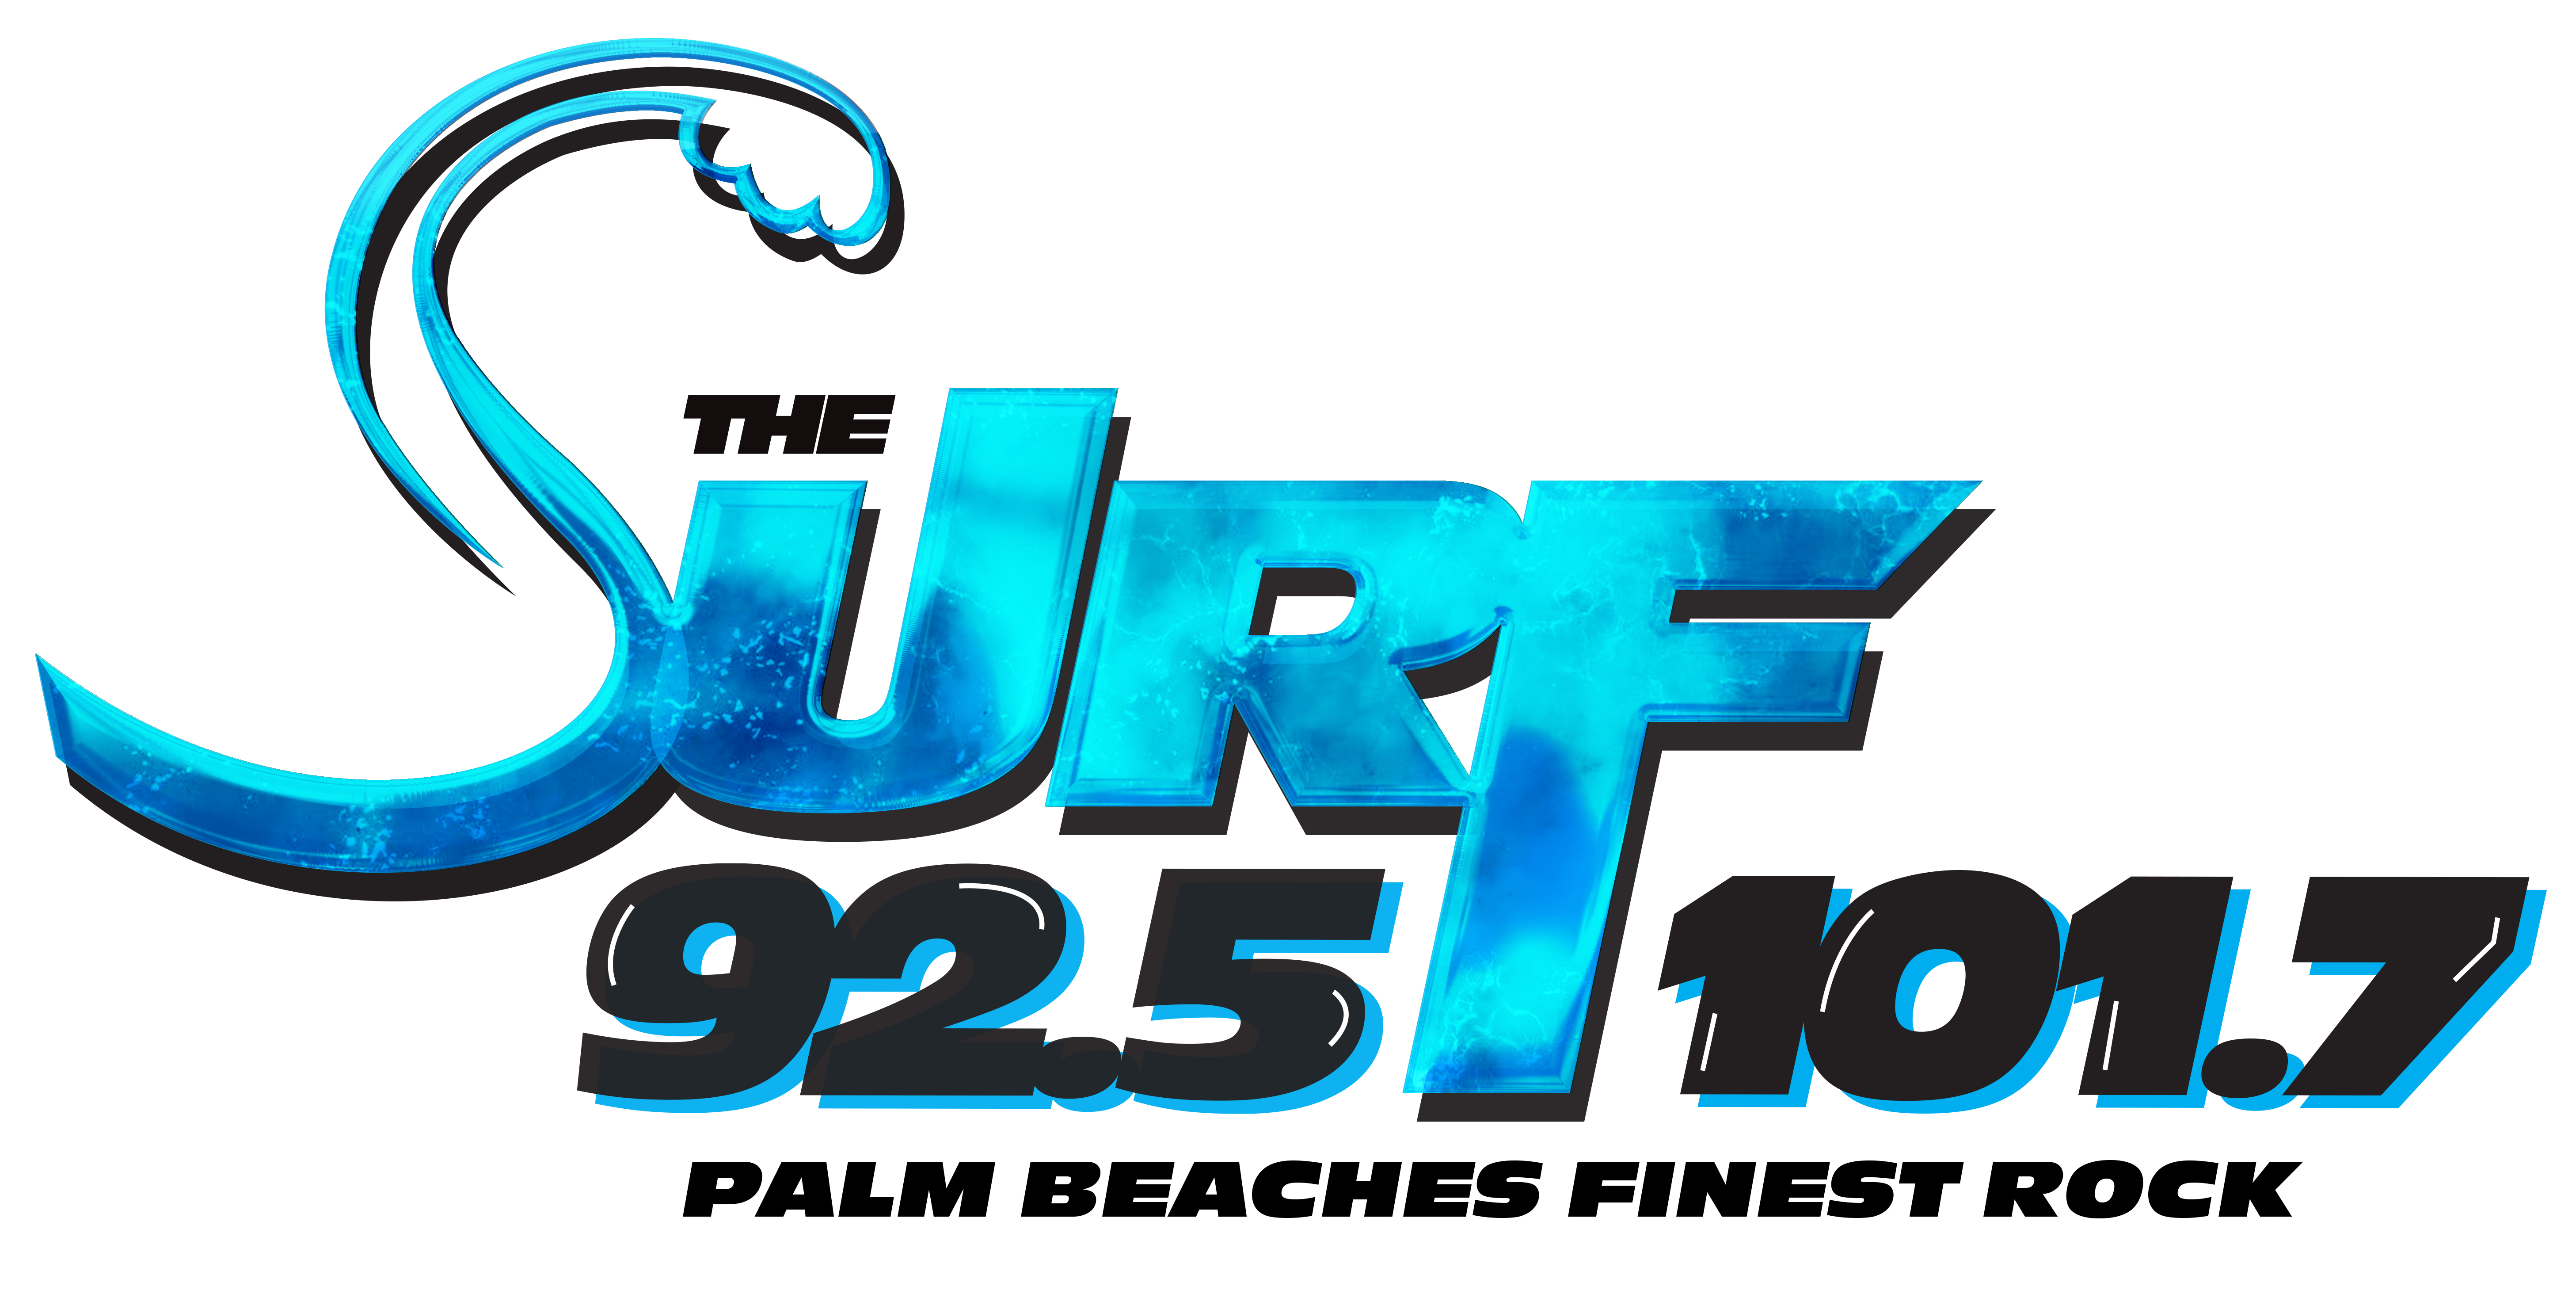 The Surf 92.5 / 101.7